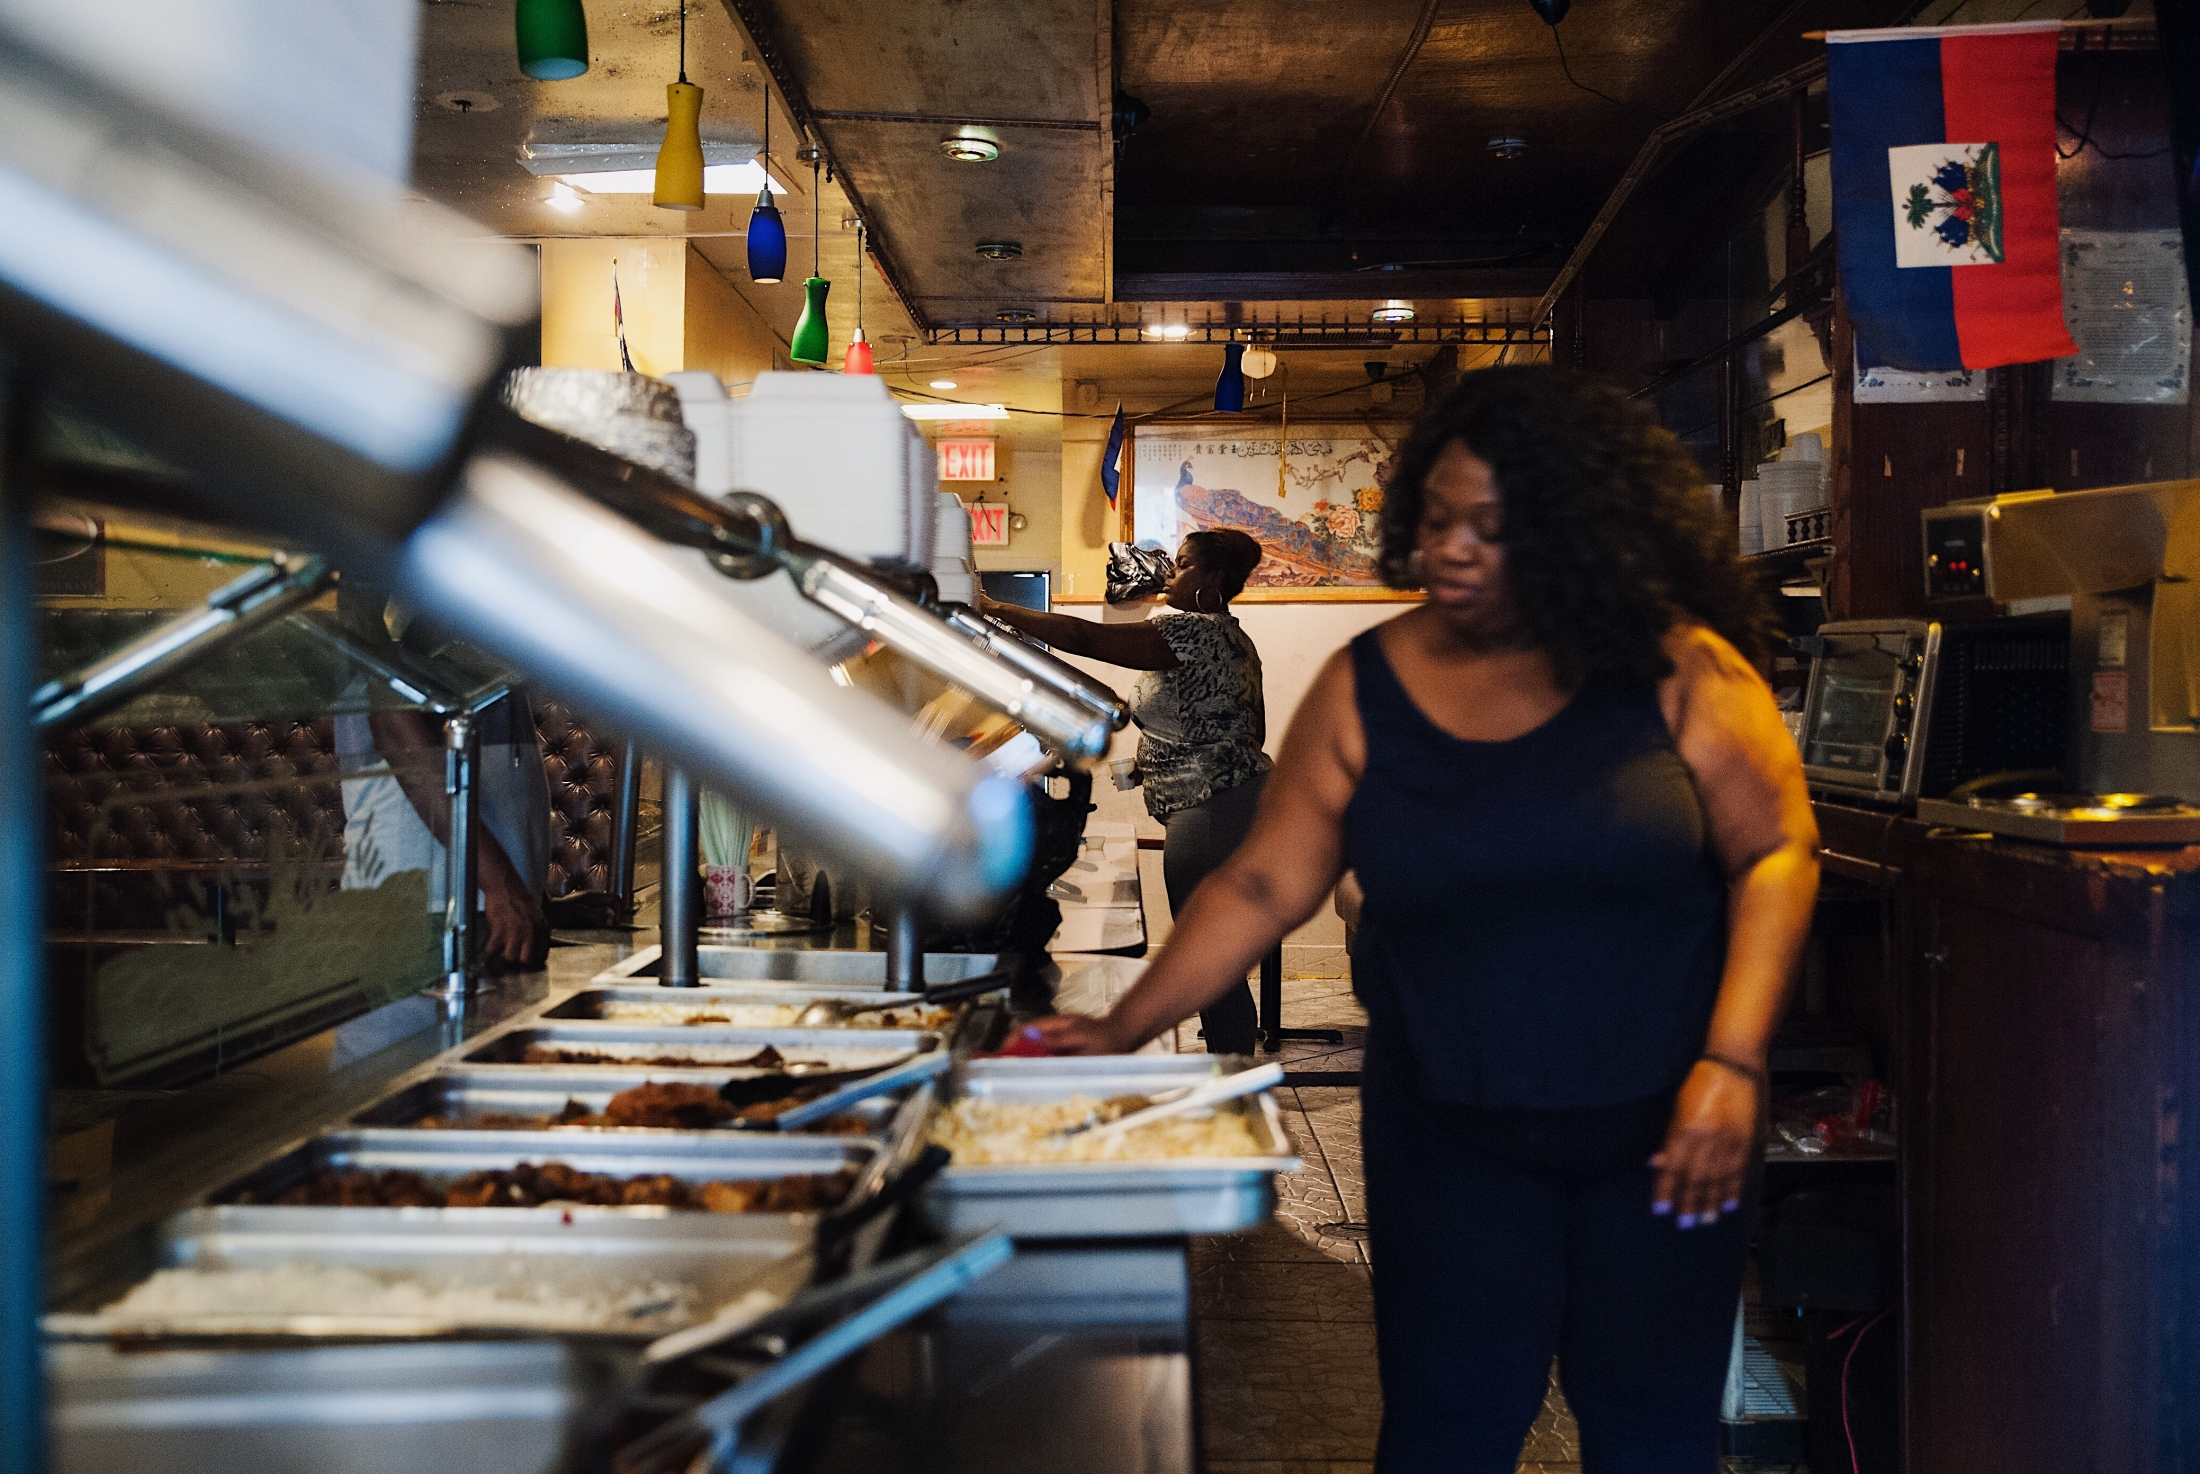 Servers cater to guests at Exit Creole Restaurant on 1805 Nostrand Ave in Flatbush.